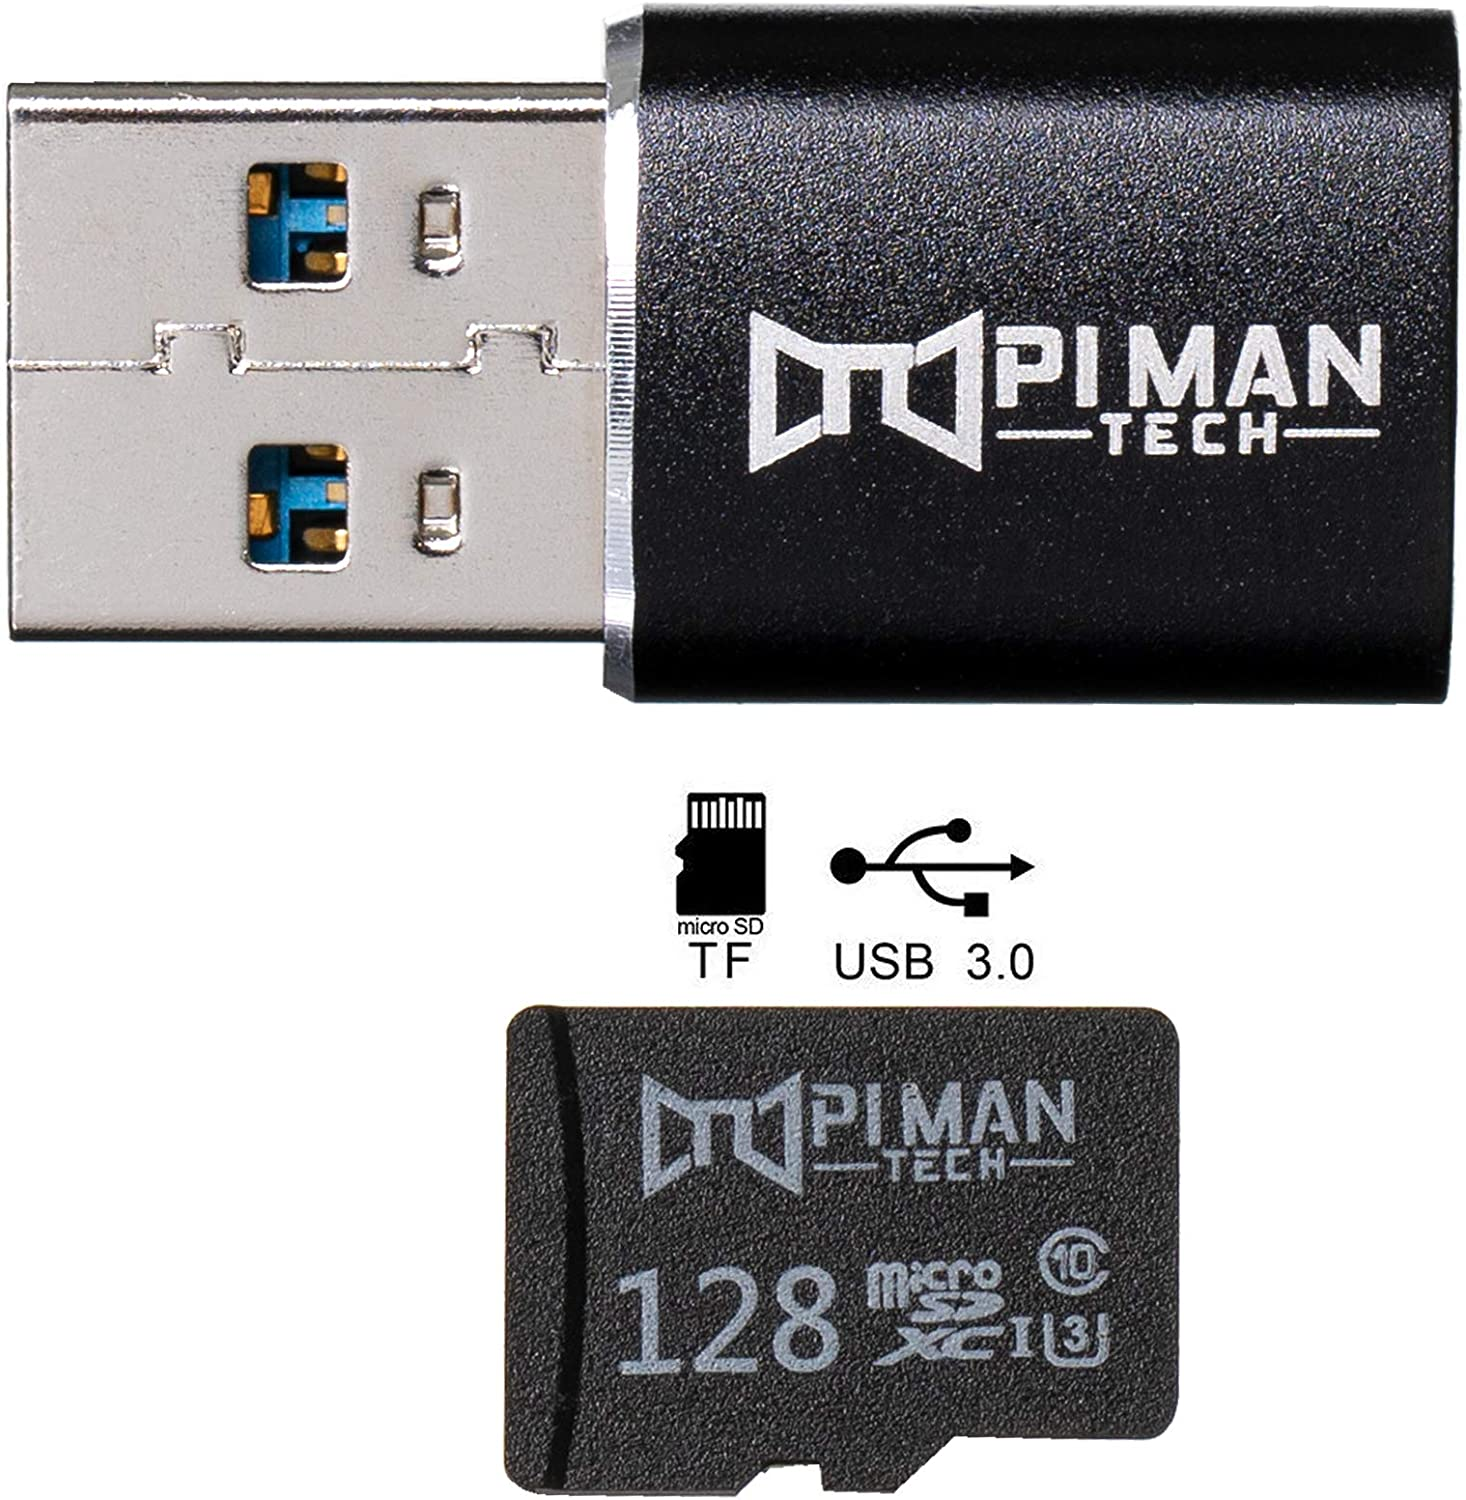 PI MAN TECH S3XY TeslaCam Preformatted Plug and Play USB 3.0 Adapter and 128 GB MicroSD Card. Fast Sentry Mode and DashCam Drive for Model S 3 X and Y.